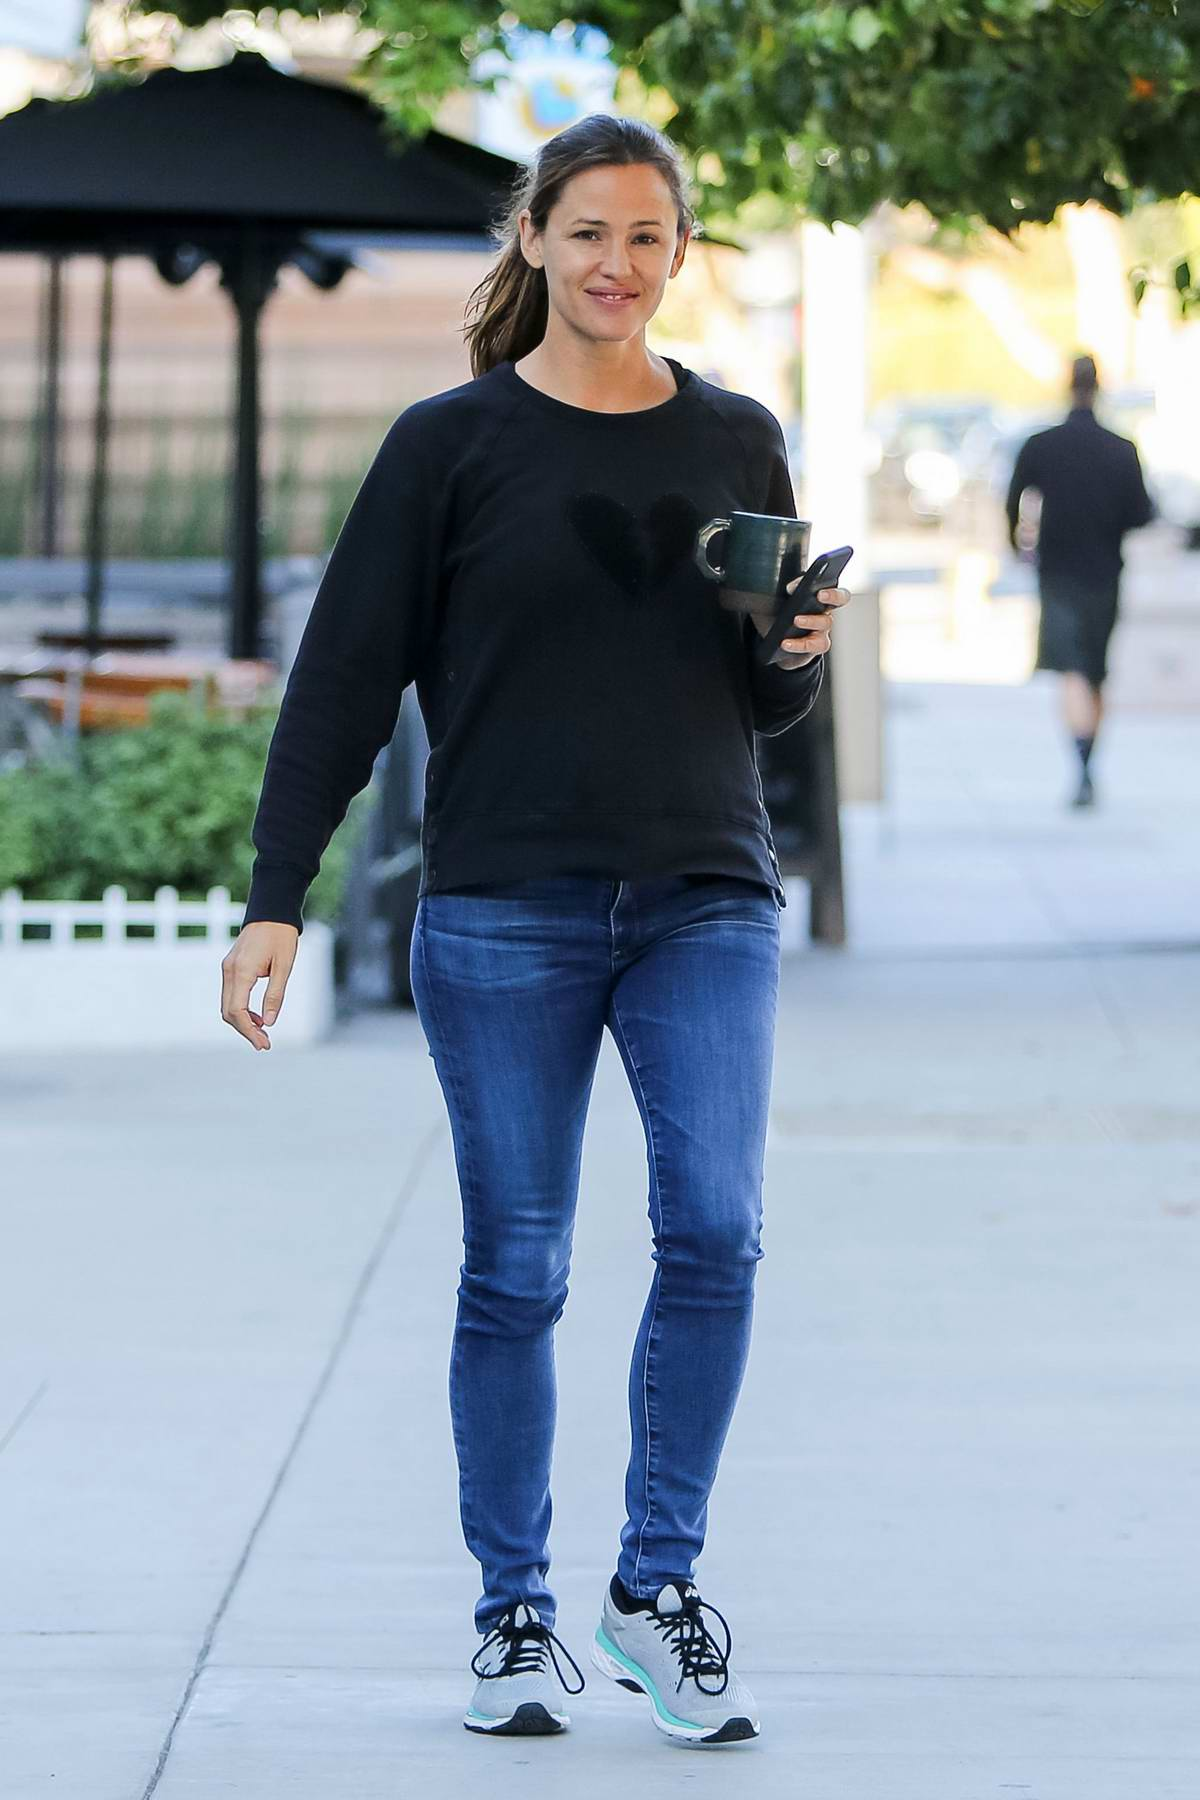 Jennifer Garner wears a black sweatshirt and jeans while out for a coffee in Los Angeles